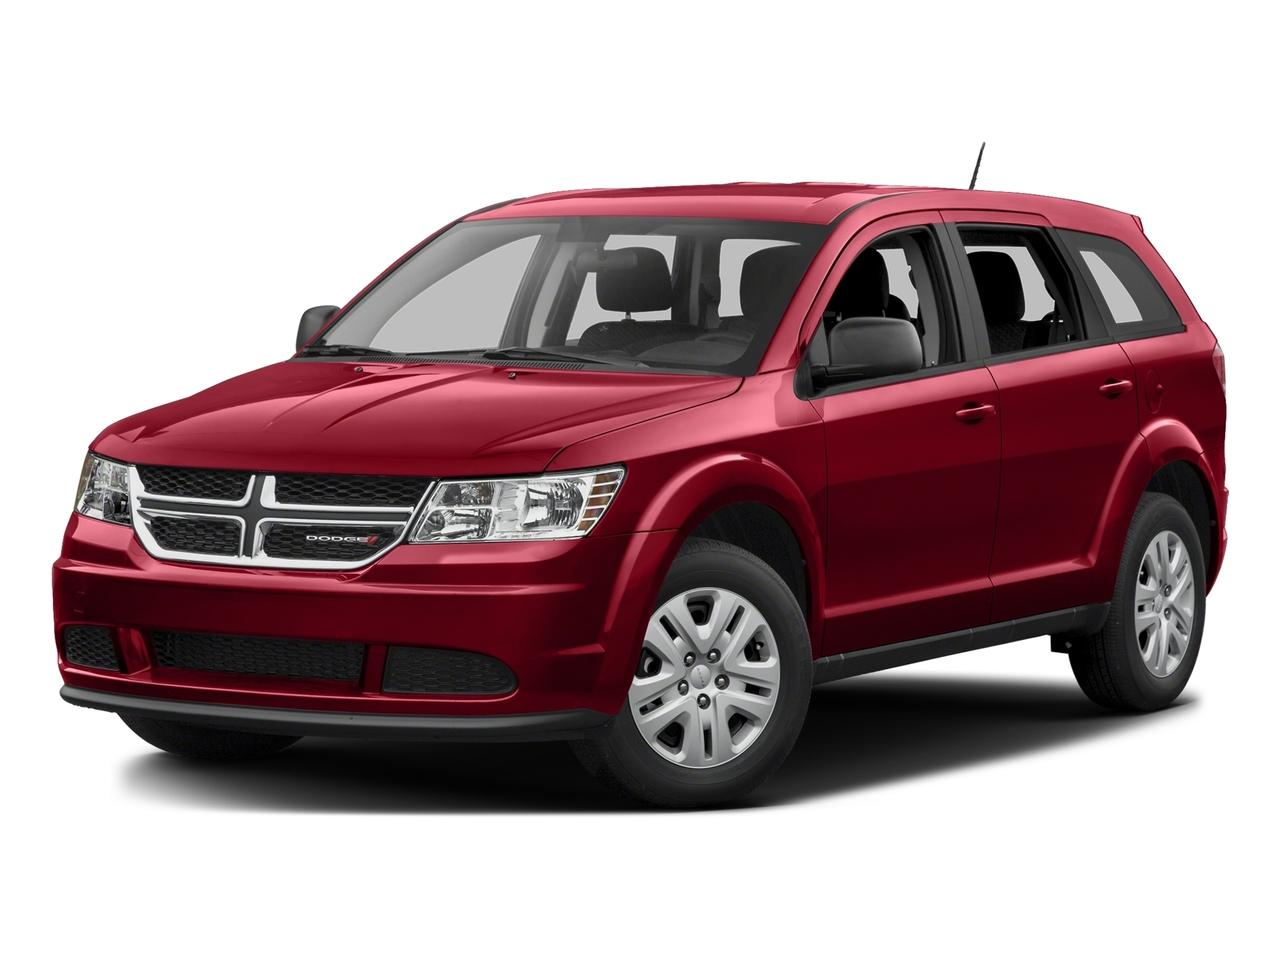 2015 Dodge Journey Vehicle Photo in Greensboro, NC 27405